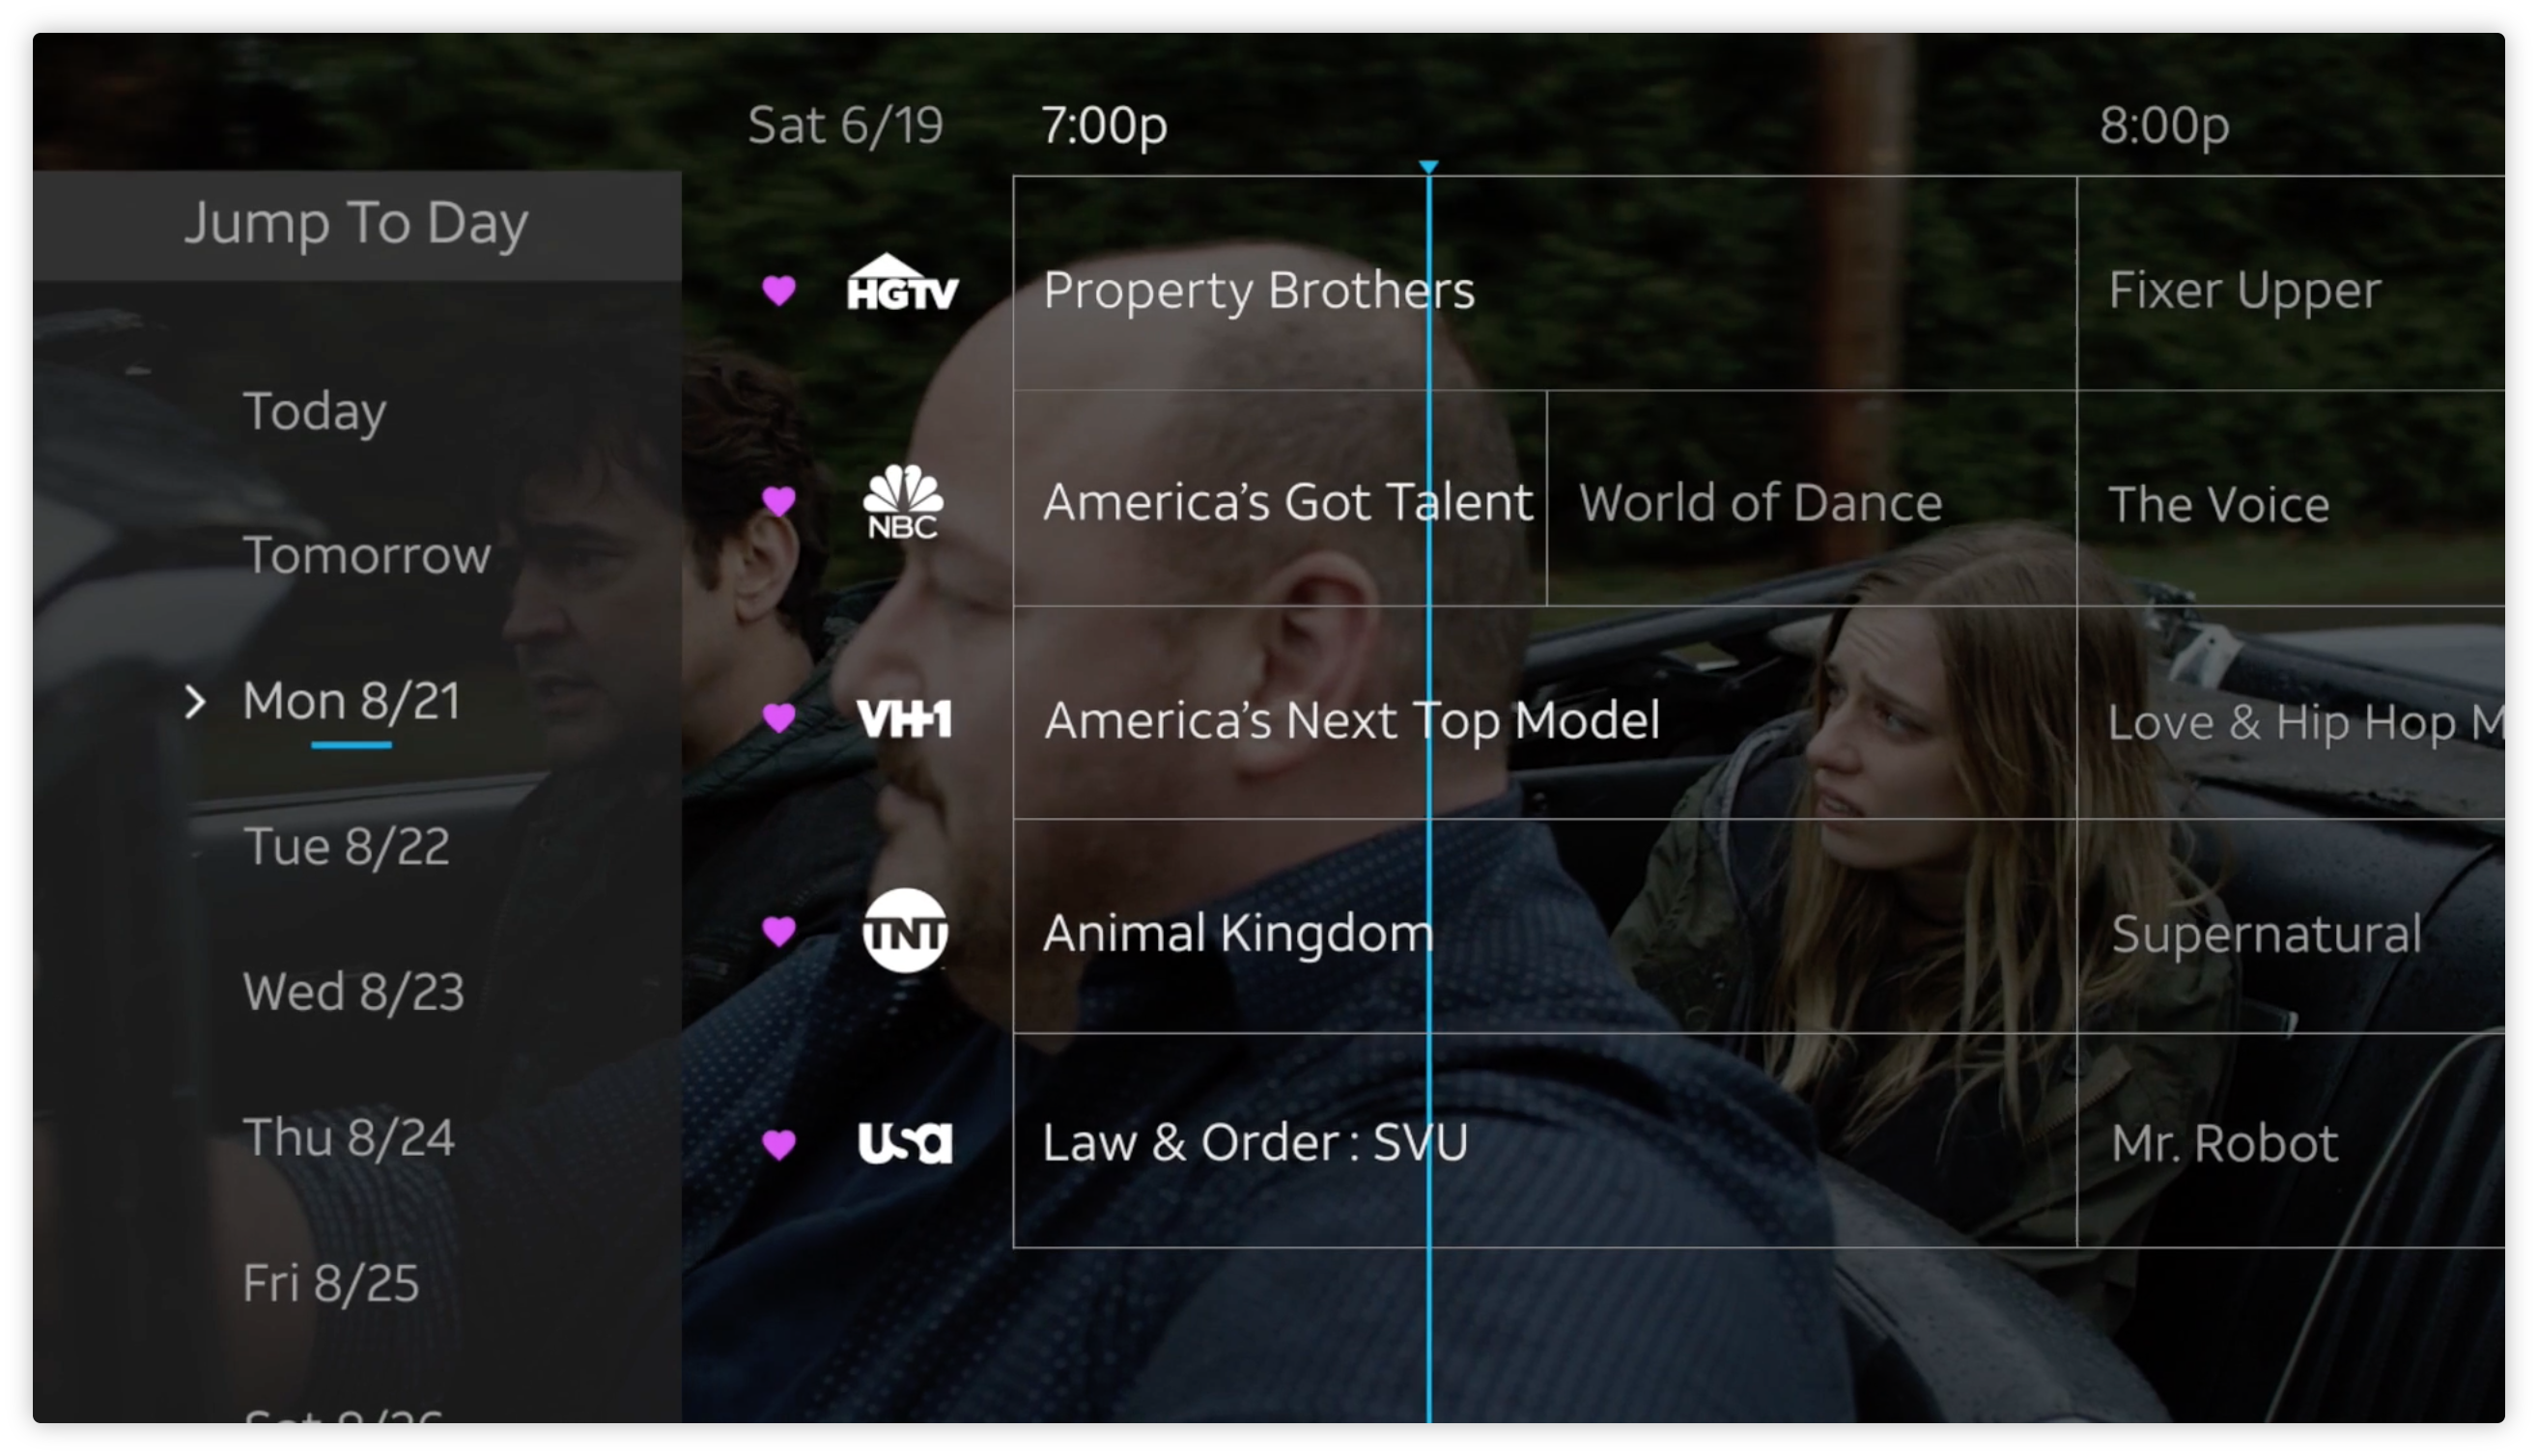 DirecTV Now officially launches Cloud DVR, revamped